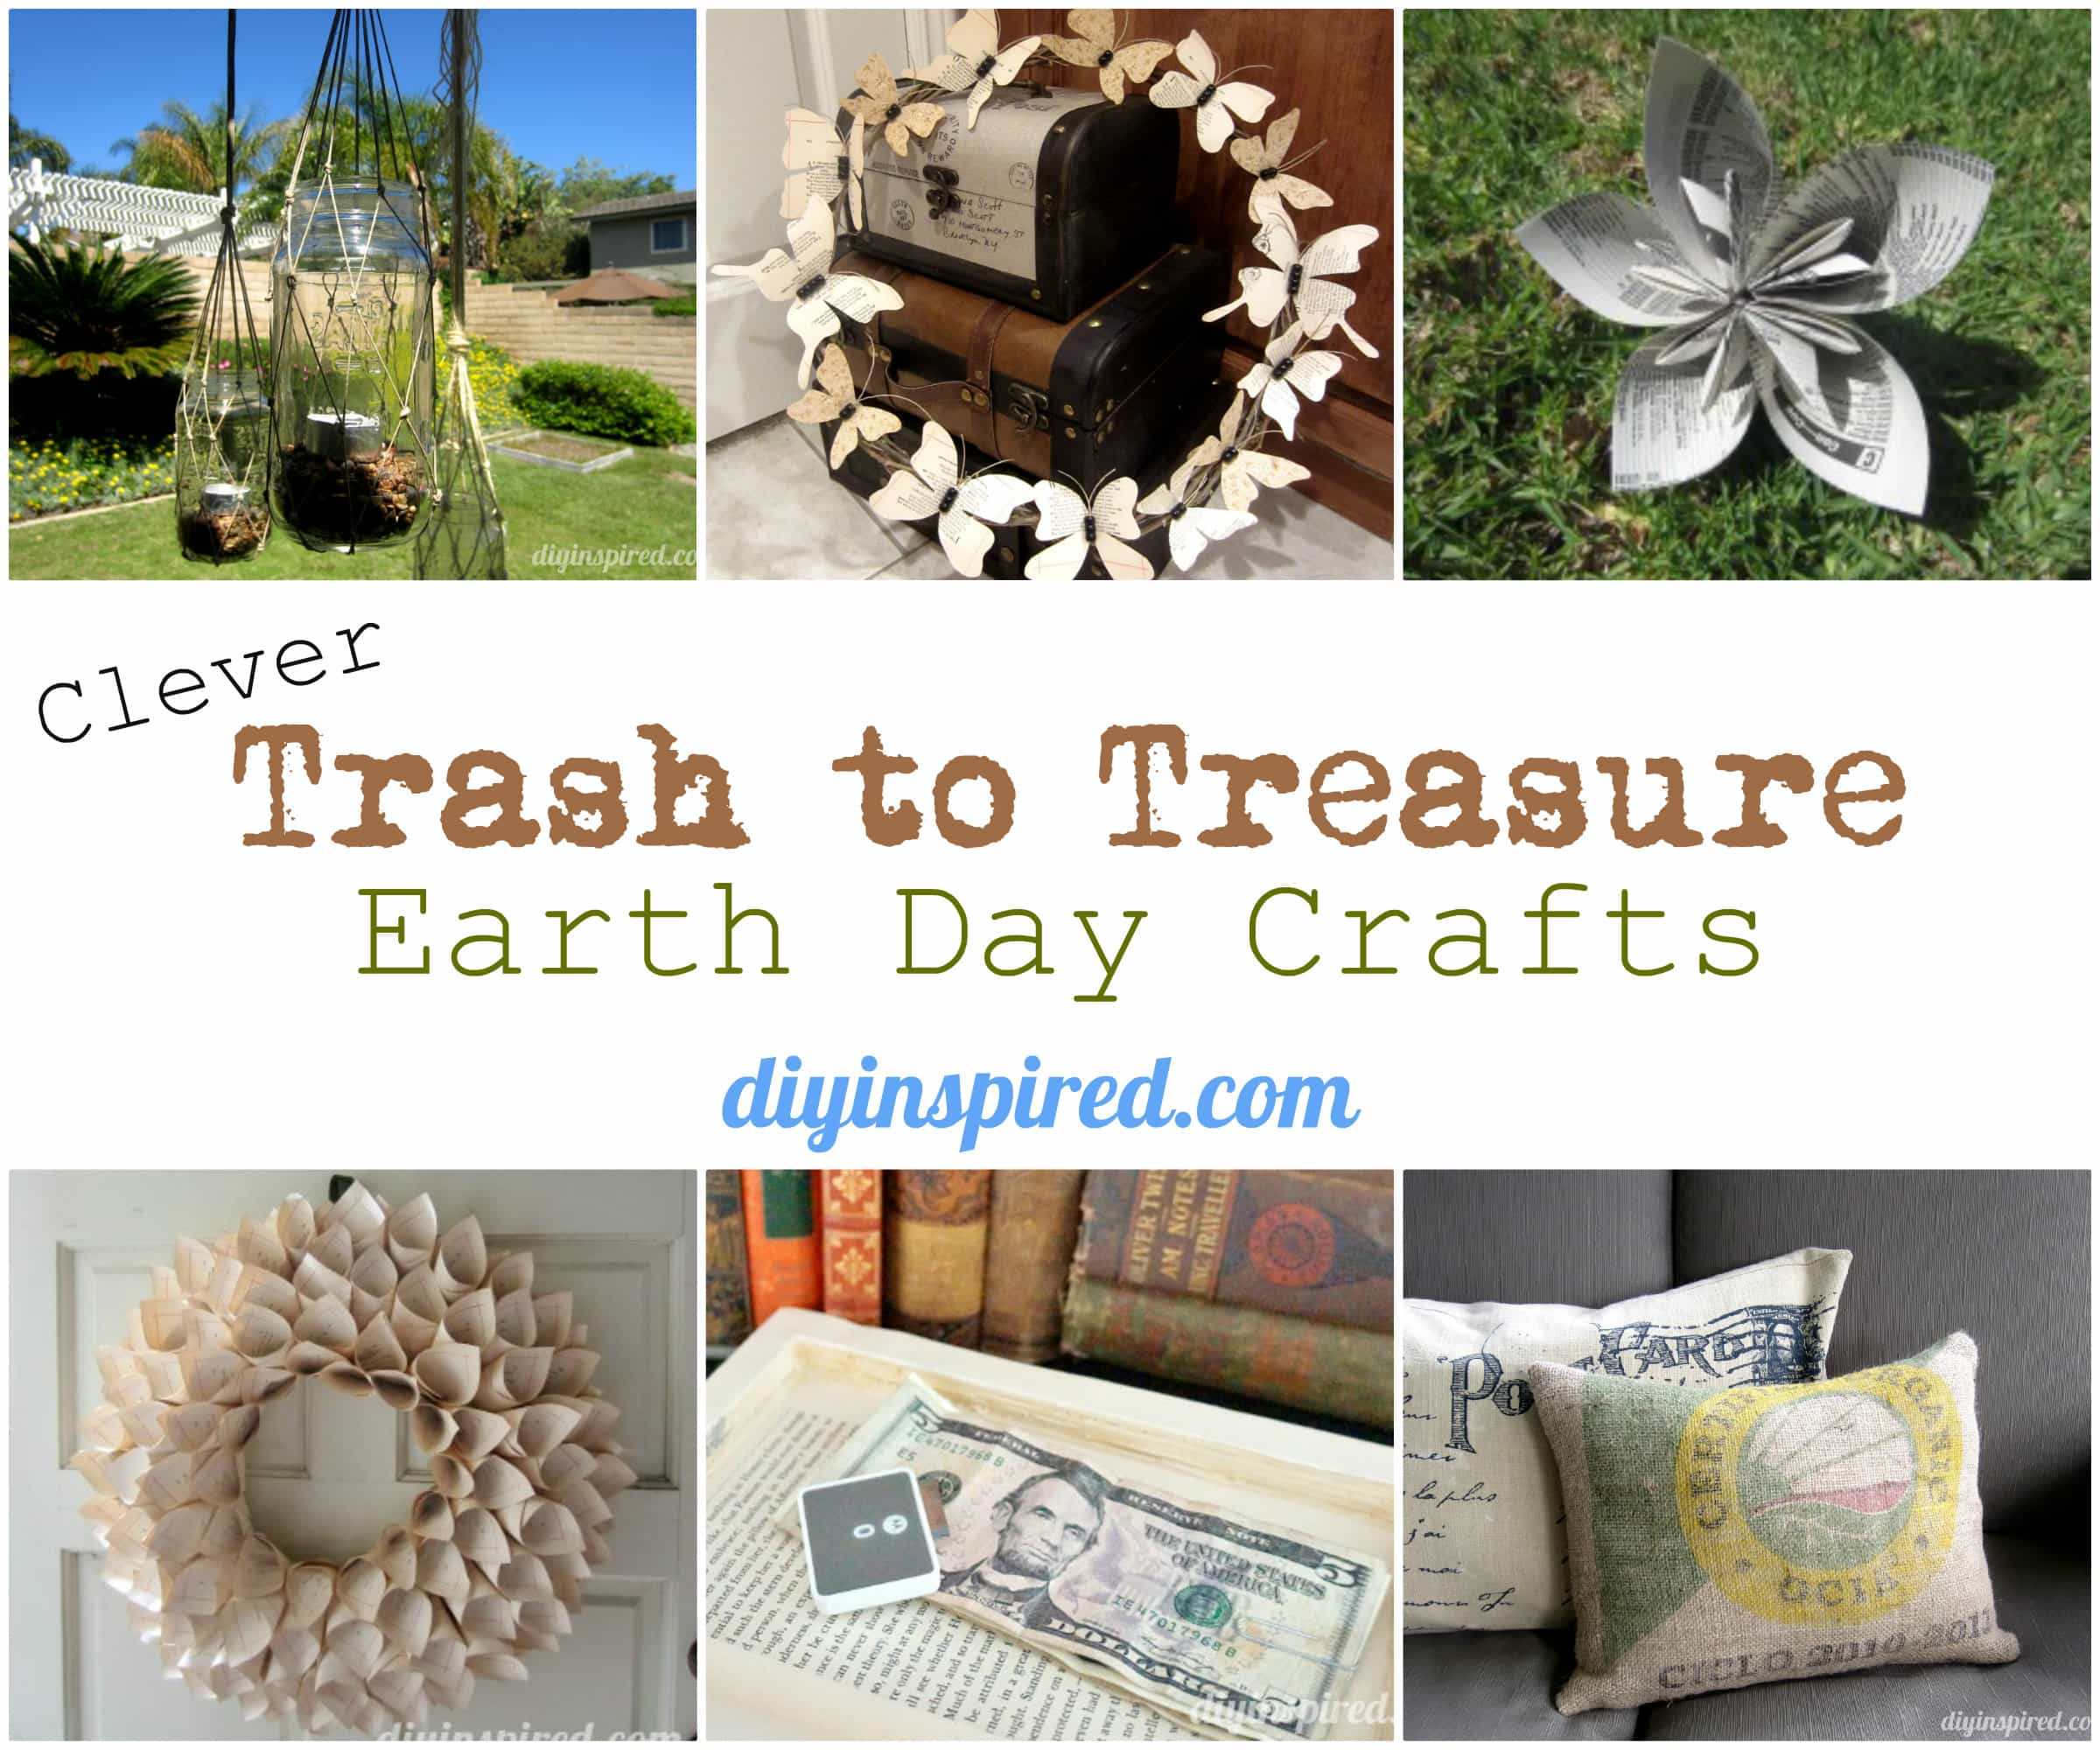 Clever Trash to Treasure Earth Day Crafts - DIY Inspired